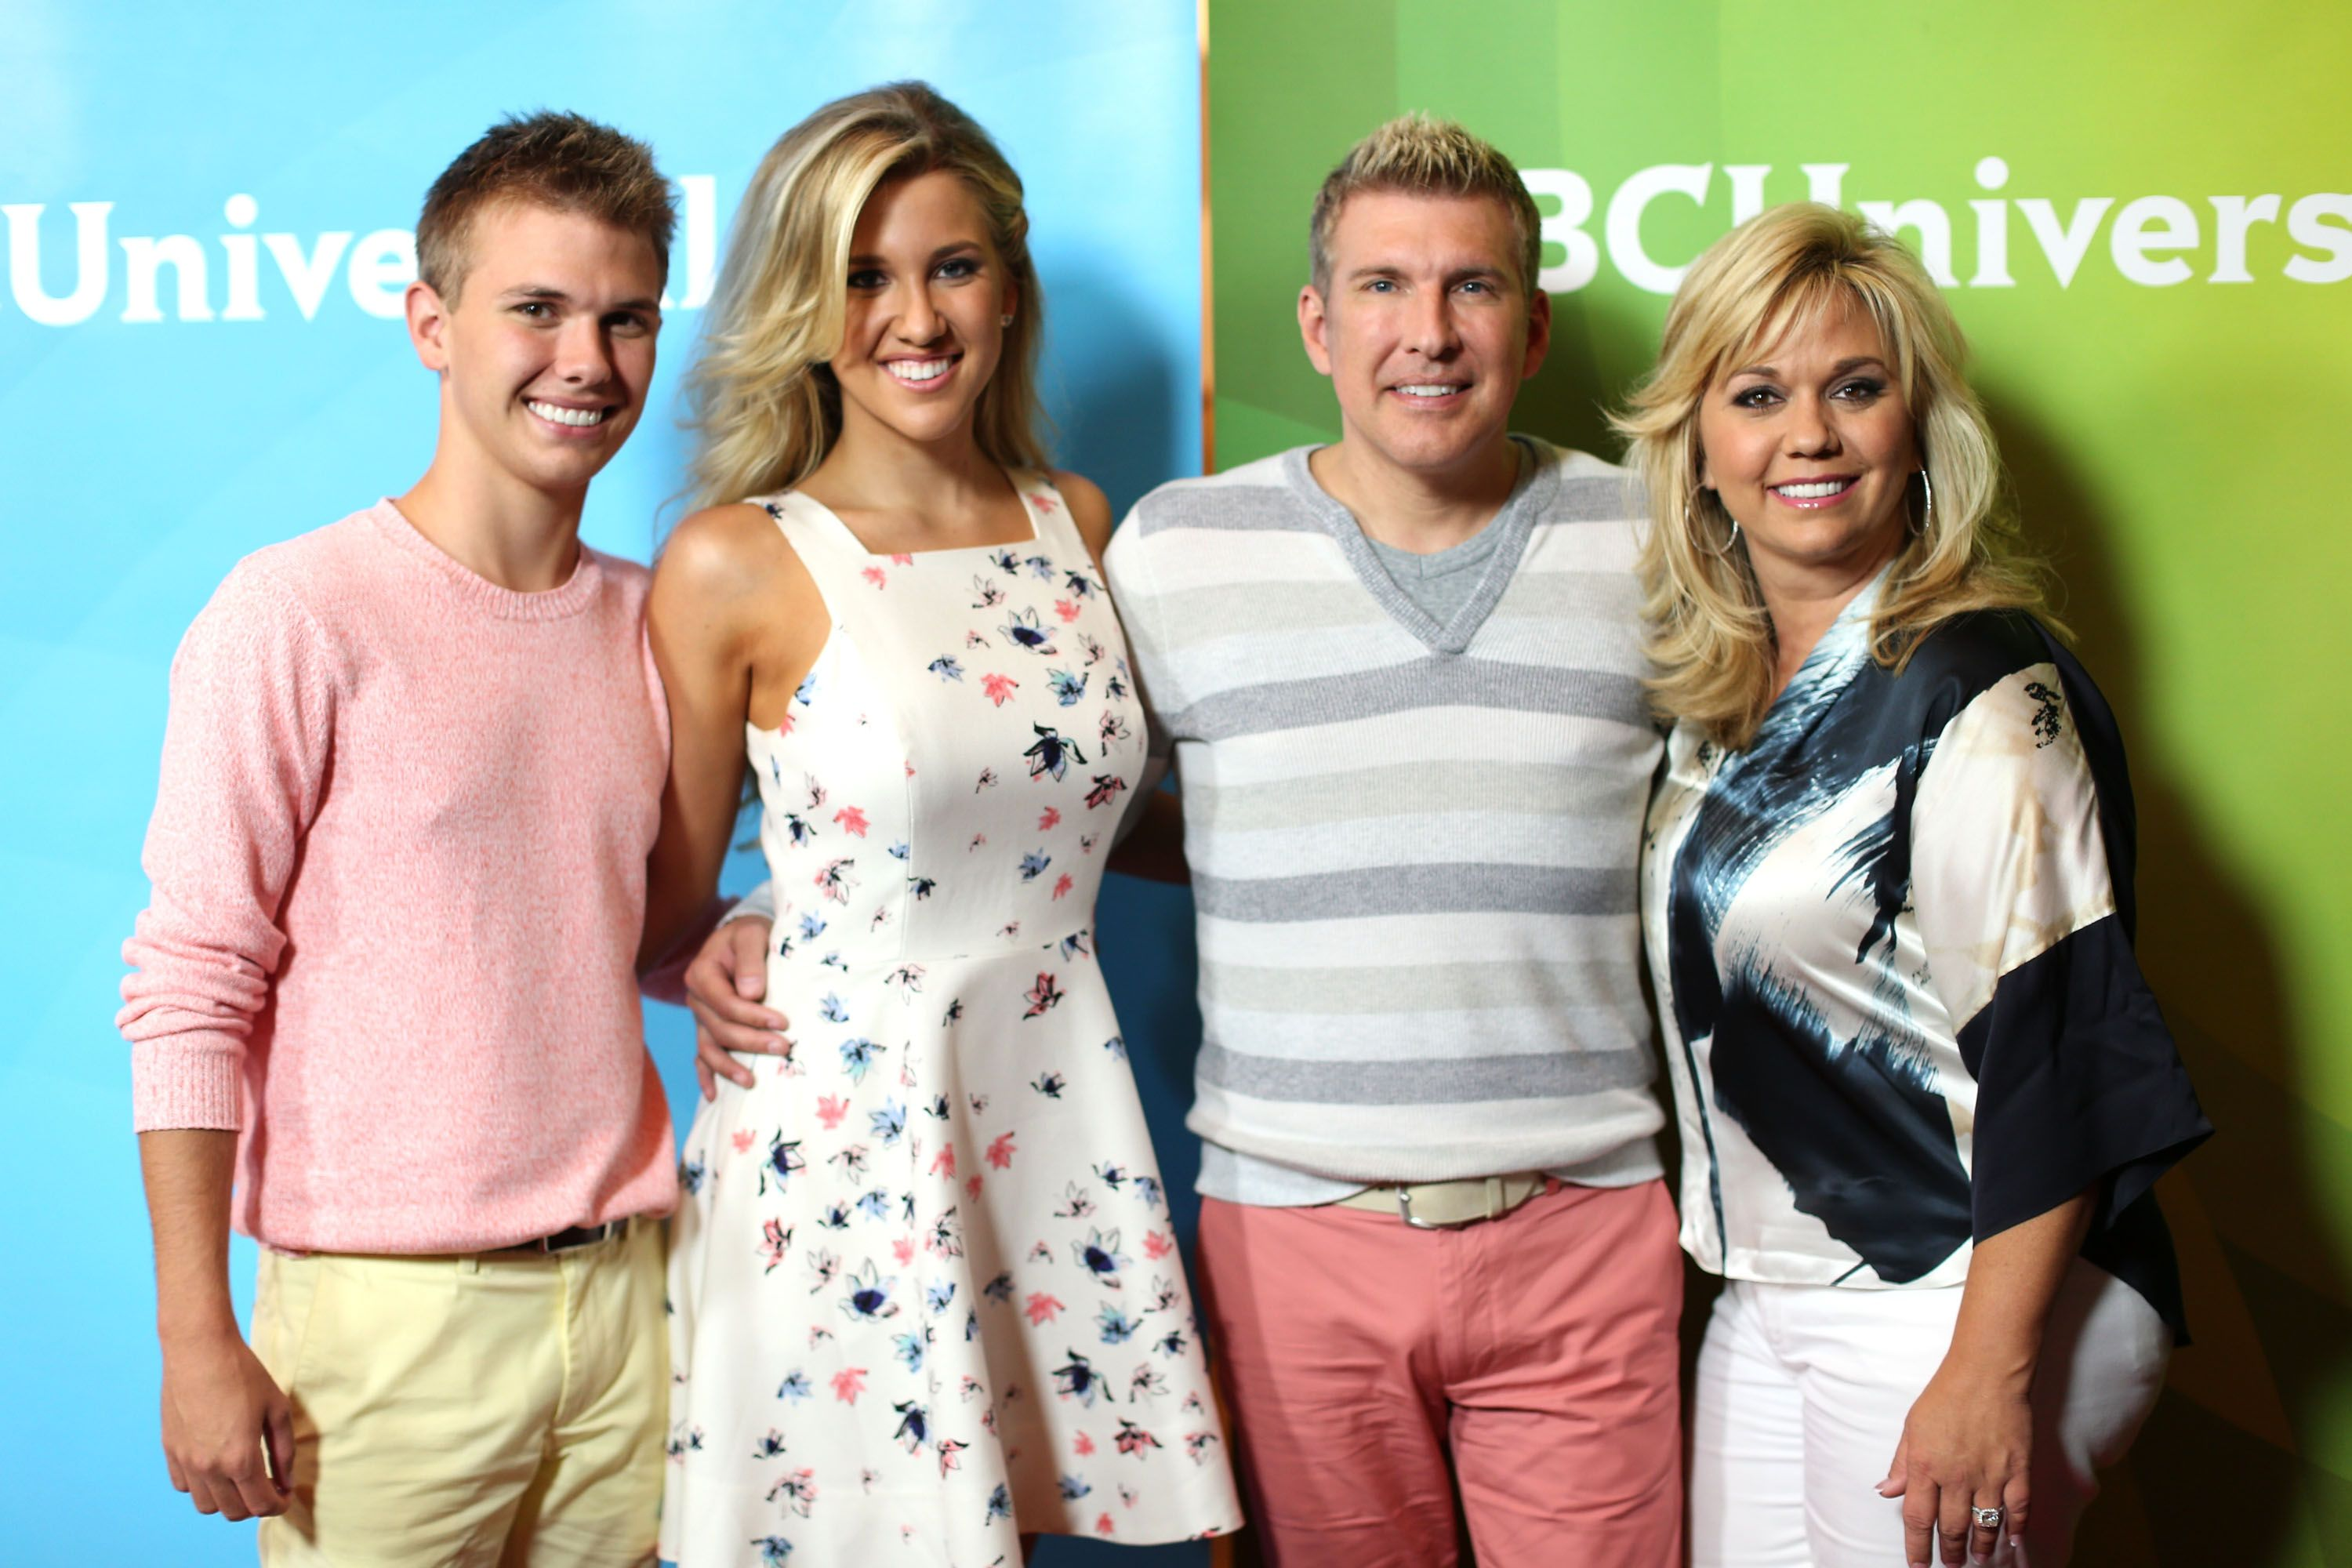 Chase Chrisley, Savannah Chrisley, Todd Chrisley and Julie Chrisley at NBCUniversal's 2014 Summer TCA Tour day 2 at The Beverly Hilton Hotel on July 14, 2014 | Photo: Getty Images